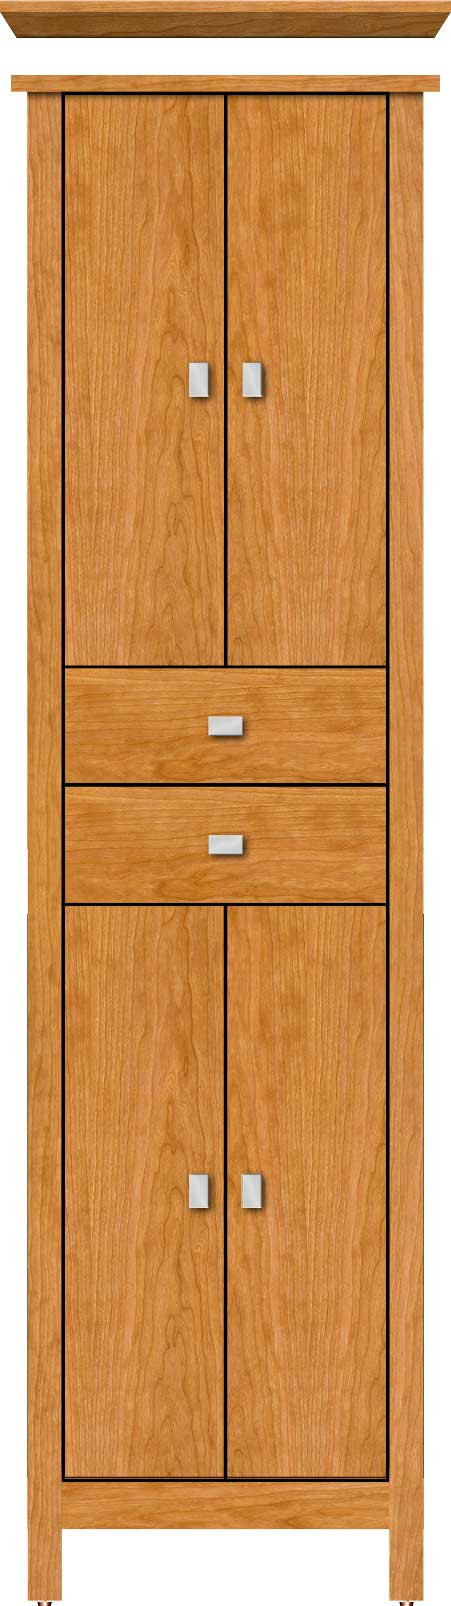 alkilinenslab - Strasser Woodenworks Alki Linen Tower, 4 Door Styles, 15 Finishes